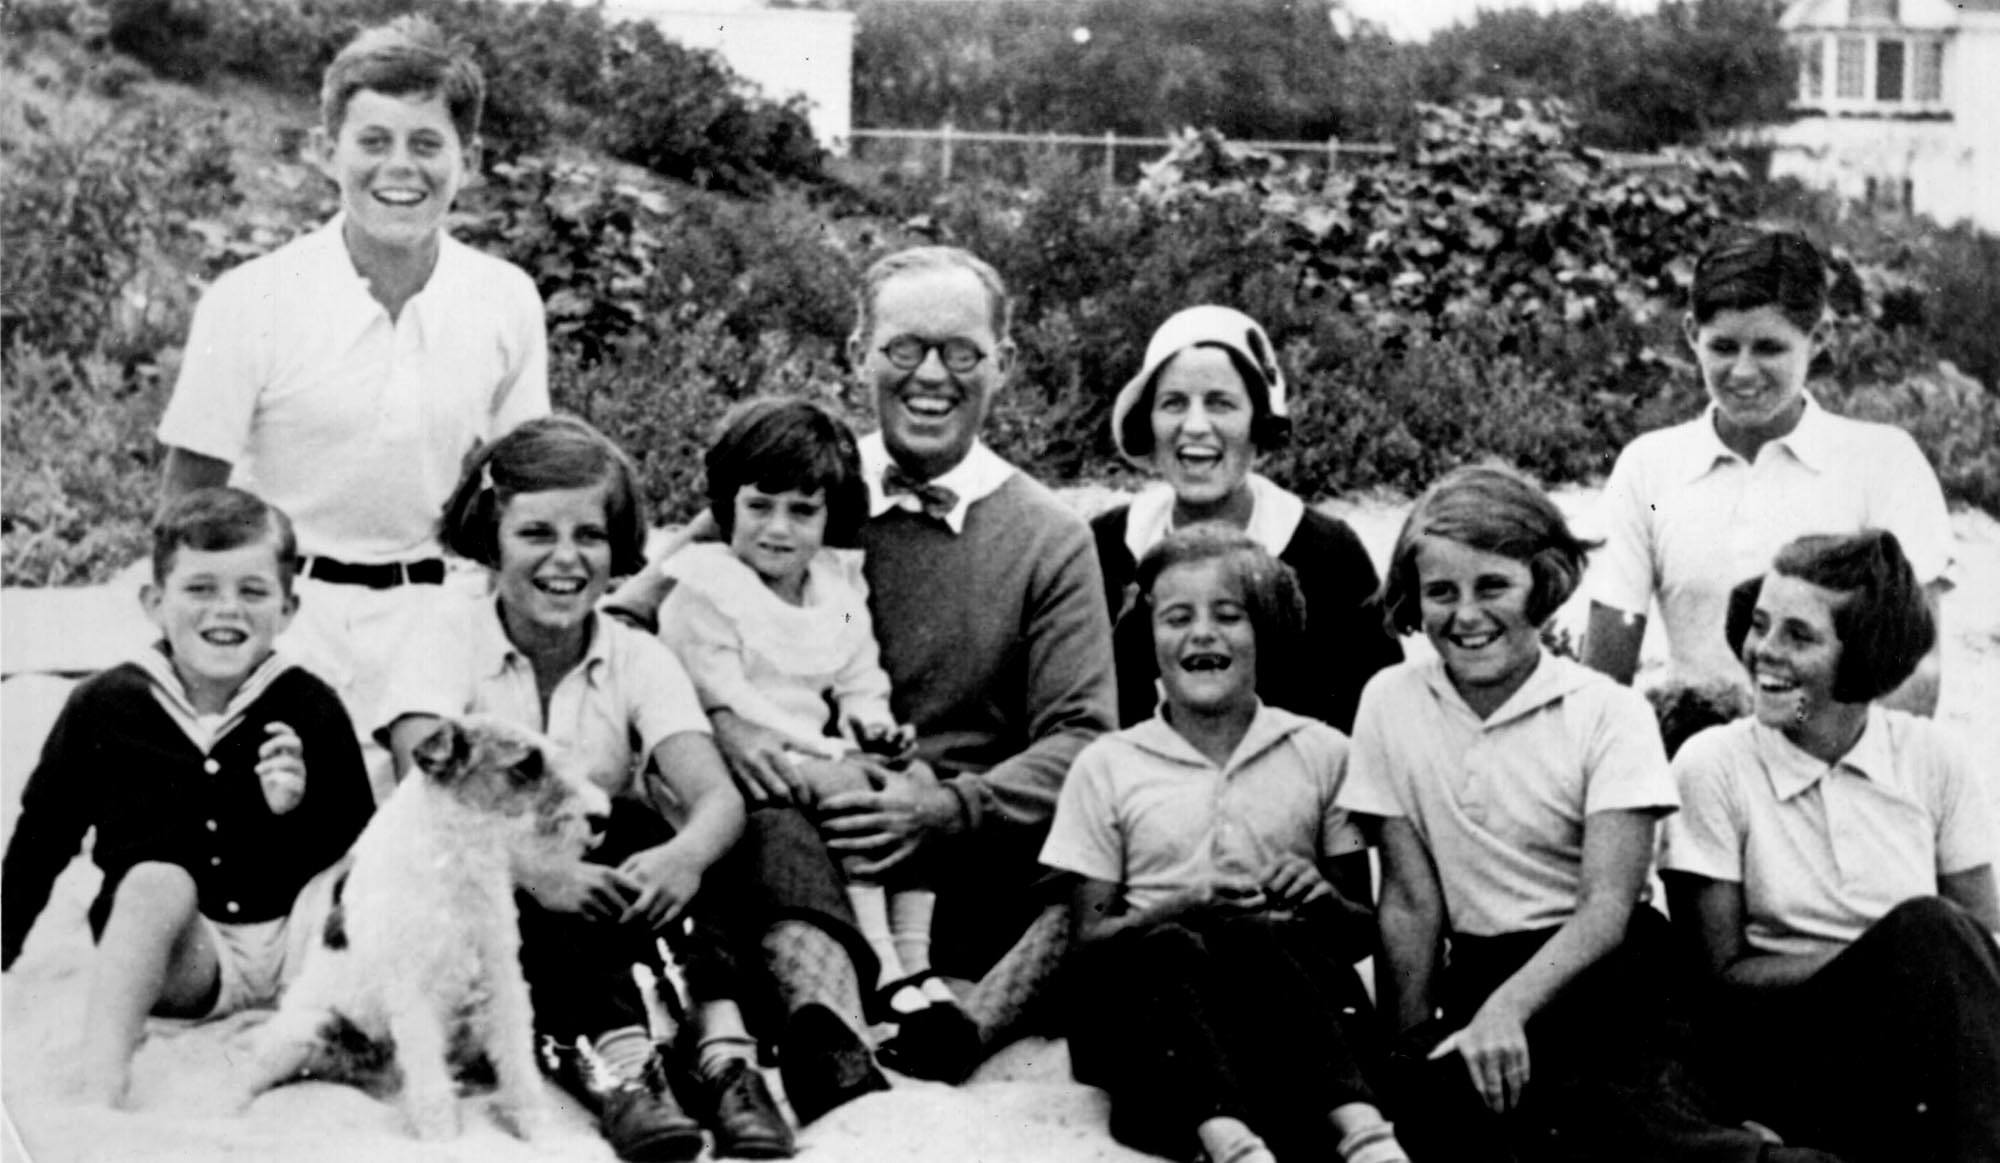 <div class='meta'><div class='origin-logo' data-origin='none'></div><span class='caption-text' data-credit='Photo by Richard Sears - provided by Mikki Ansin /Liaison Agency via Getty'>The Kennedy clan in 1931 in Hyannisport, MA.</span></div>